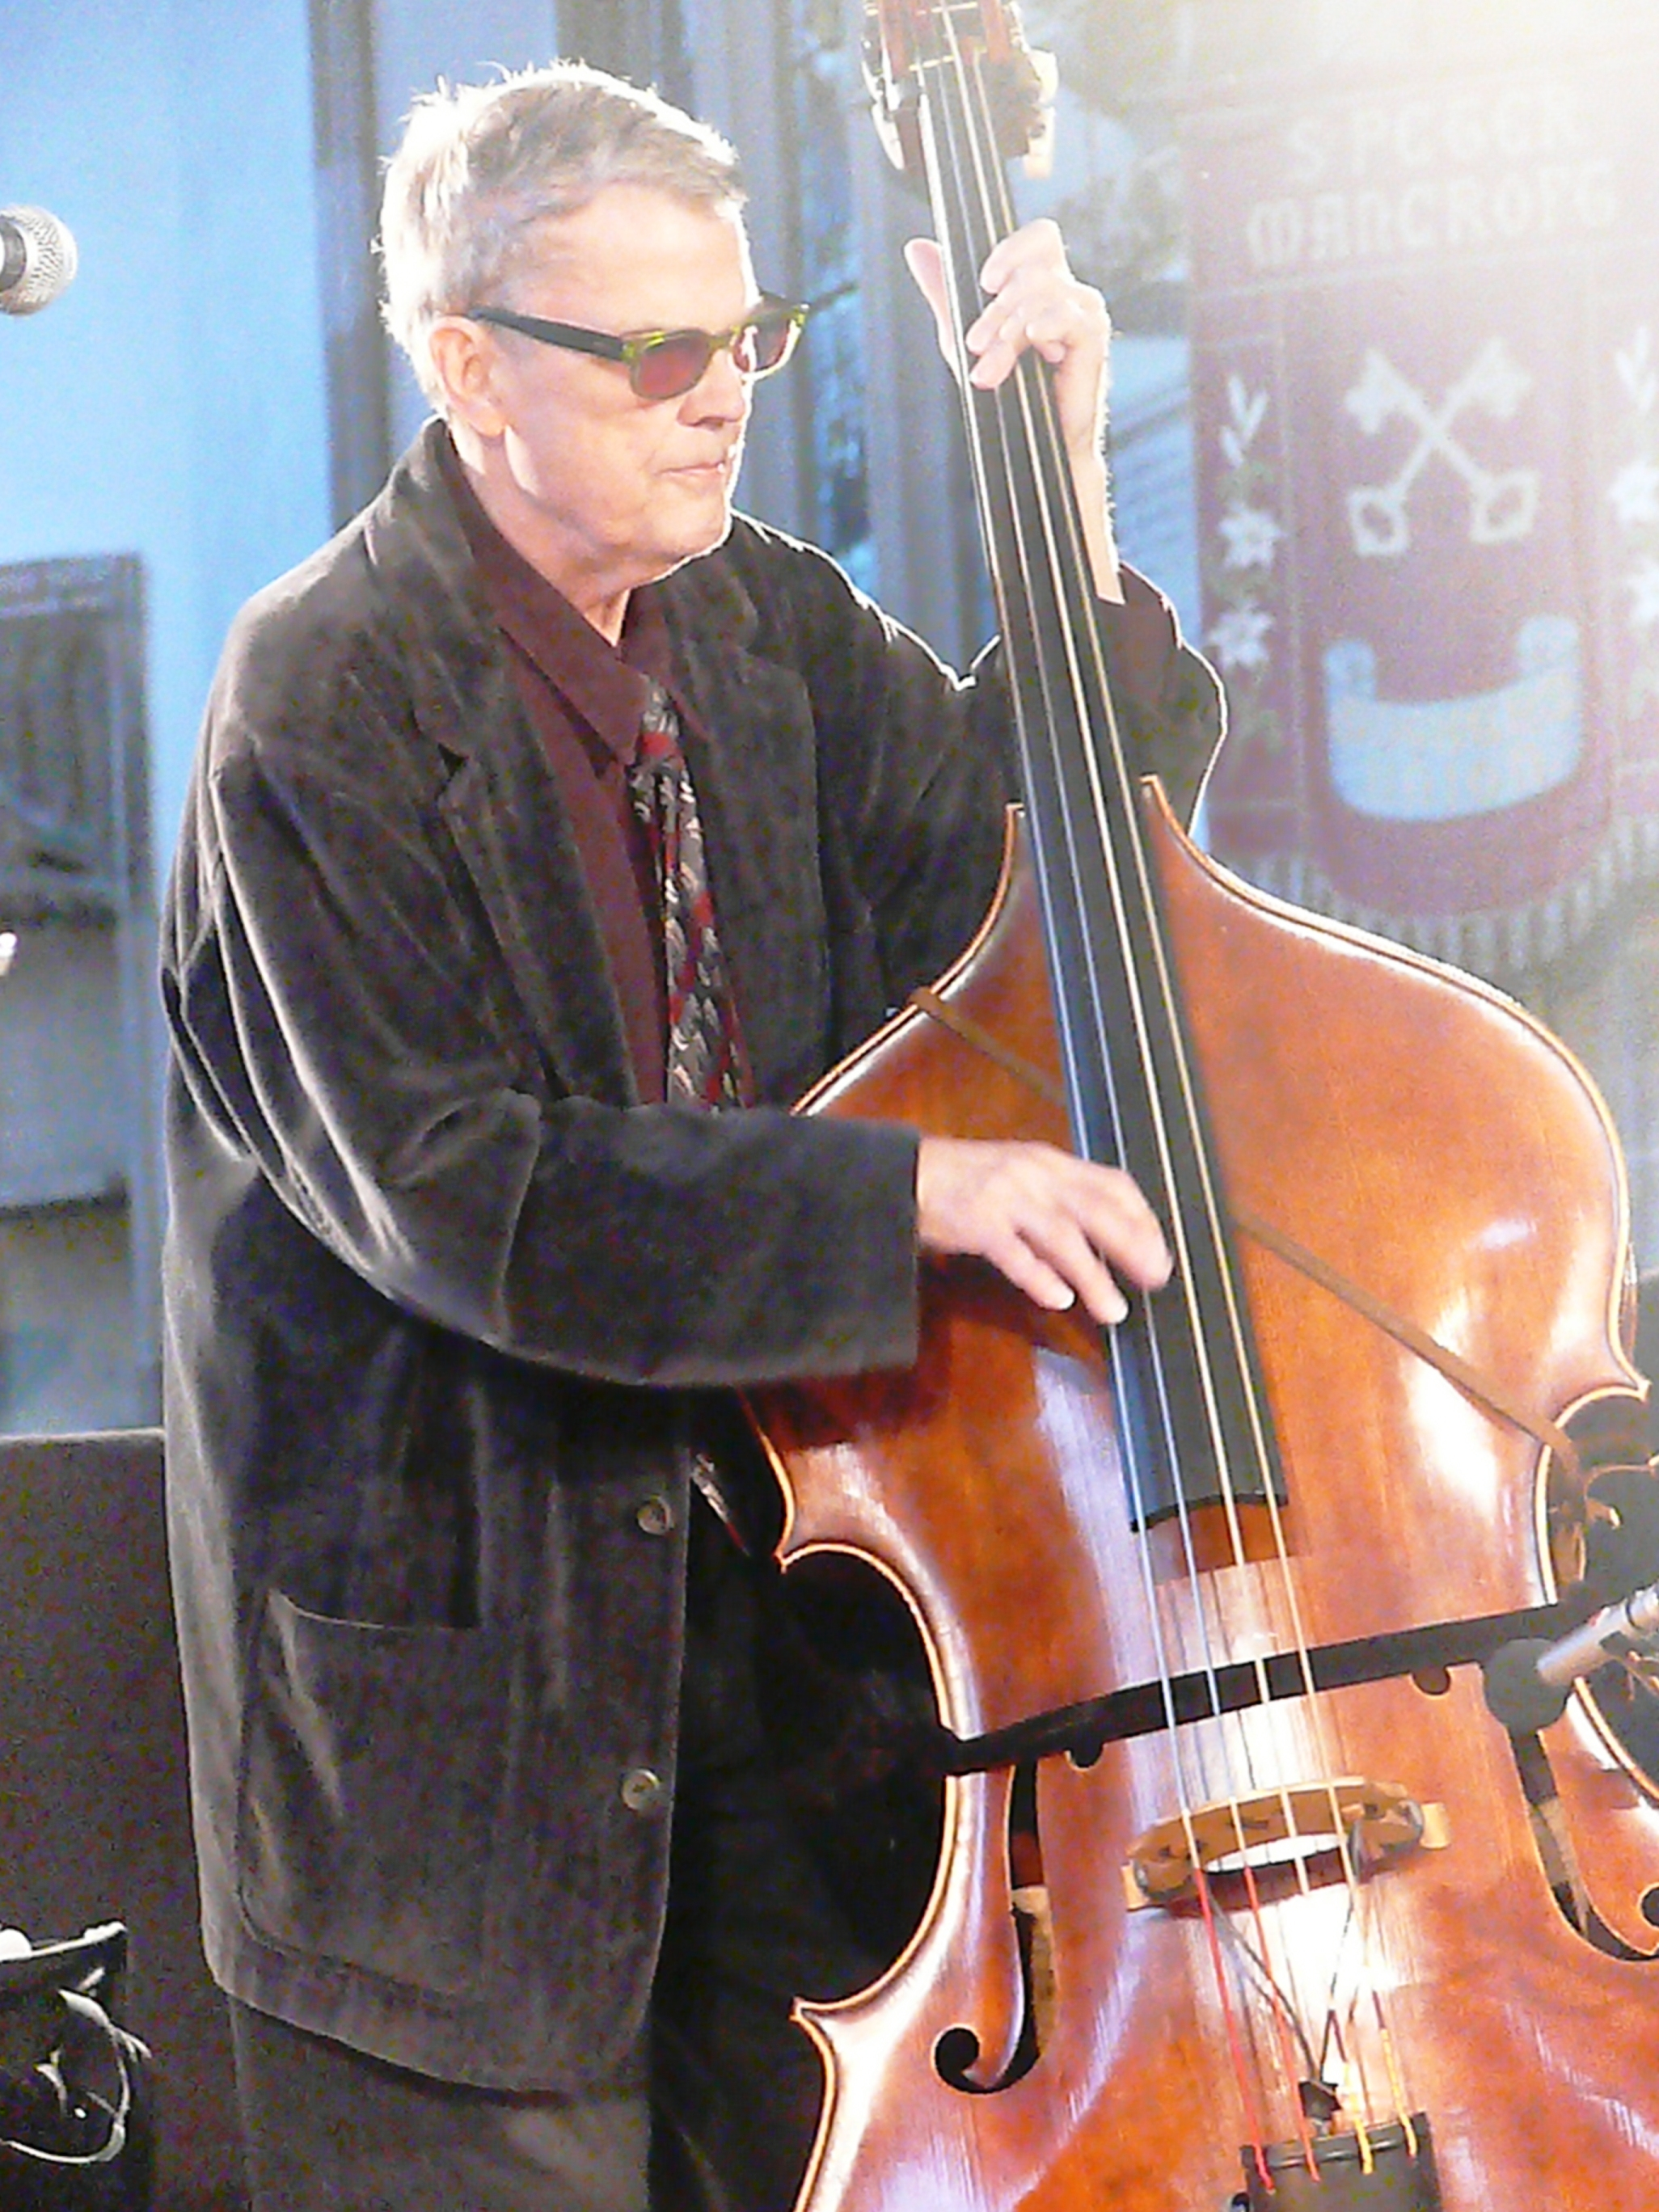 Charlie Haden at St Peter Mancroft, Norwich in May 2011